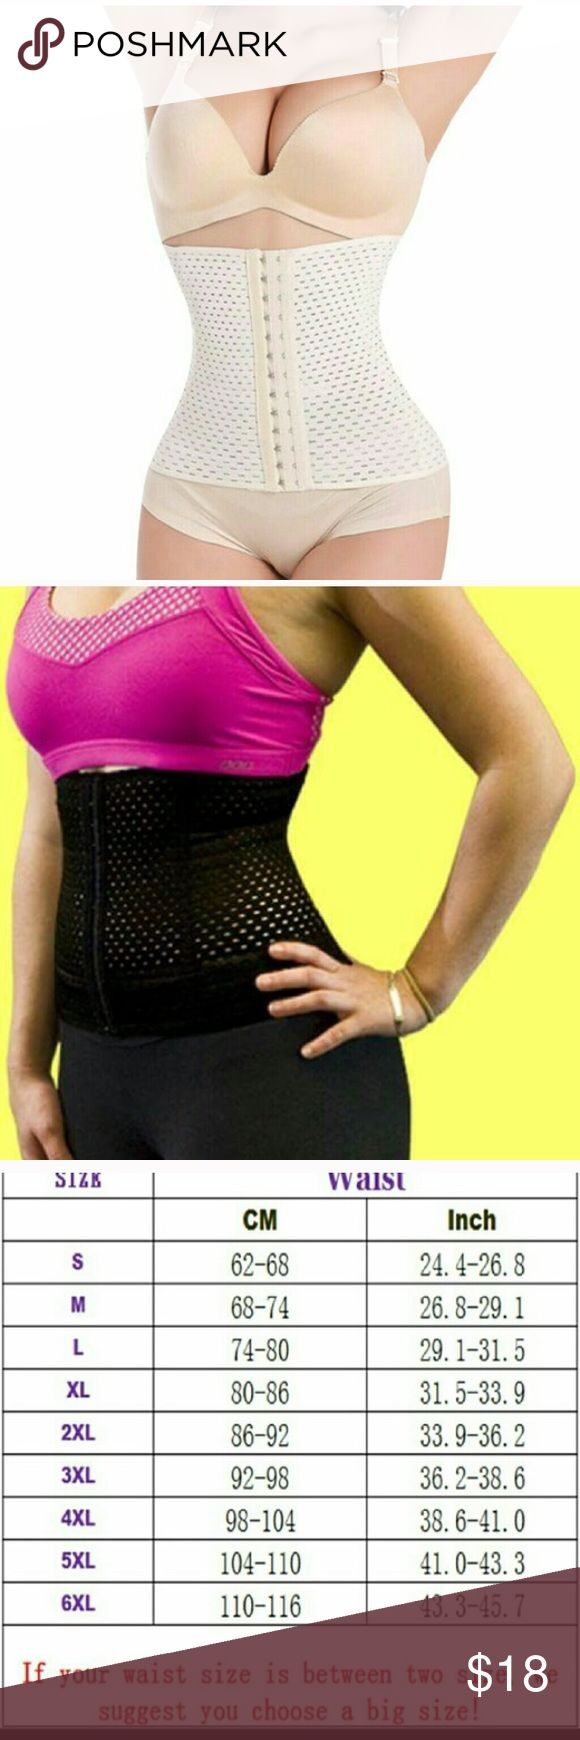 4steel boning waist trainer 1.Rows of adjustable hooks  2. Lightly Boned structure  (no imitating) 3. High compression material  4.Postpartum waist trainer   BENEFITS   1.KEEPS STOMACH/WAIST REGION TIGHT 2.AIDS IN WEIGHT LOSS  3.SUPPRESS 4.IMPROVES POSTURE  5.Encourage respiration   Top quality Body Waist Trainer Shapers Belt Fitness Fat Burning Girdle Body Control Cincher Waist training corset minceur(4 Steel Bone)HUNGER Other